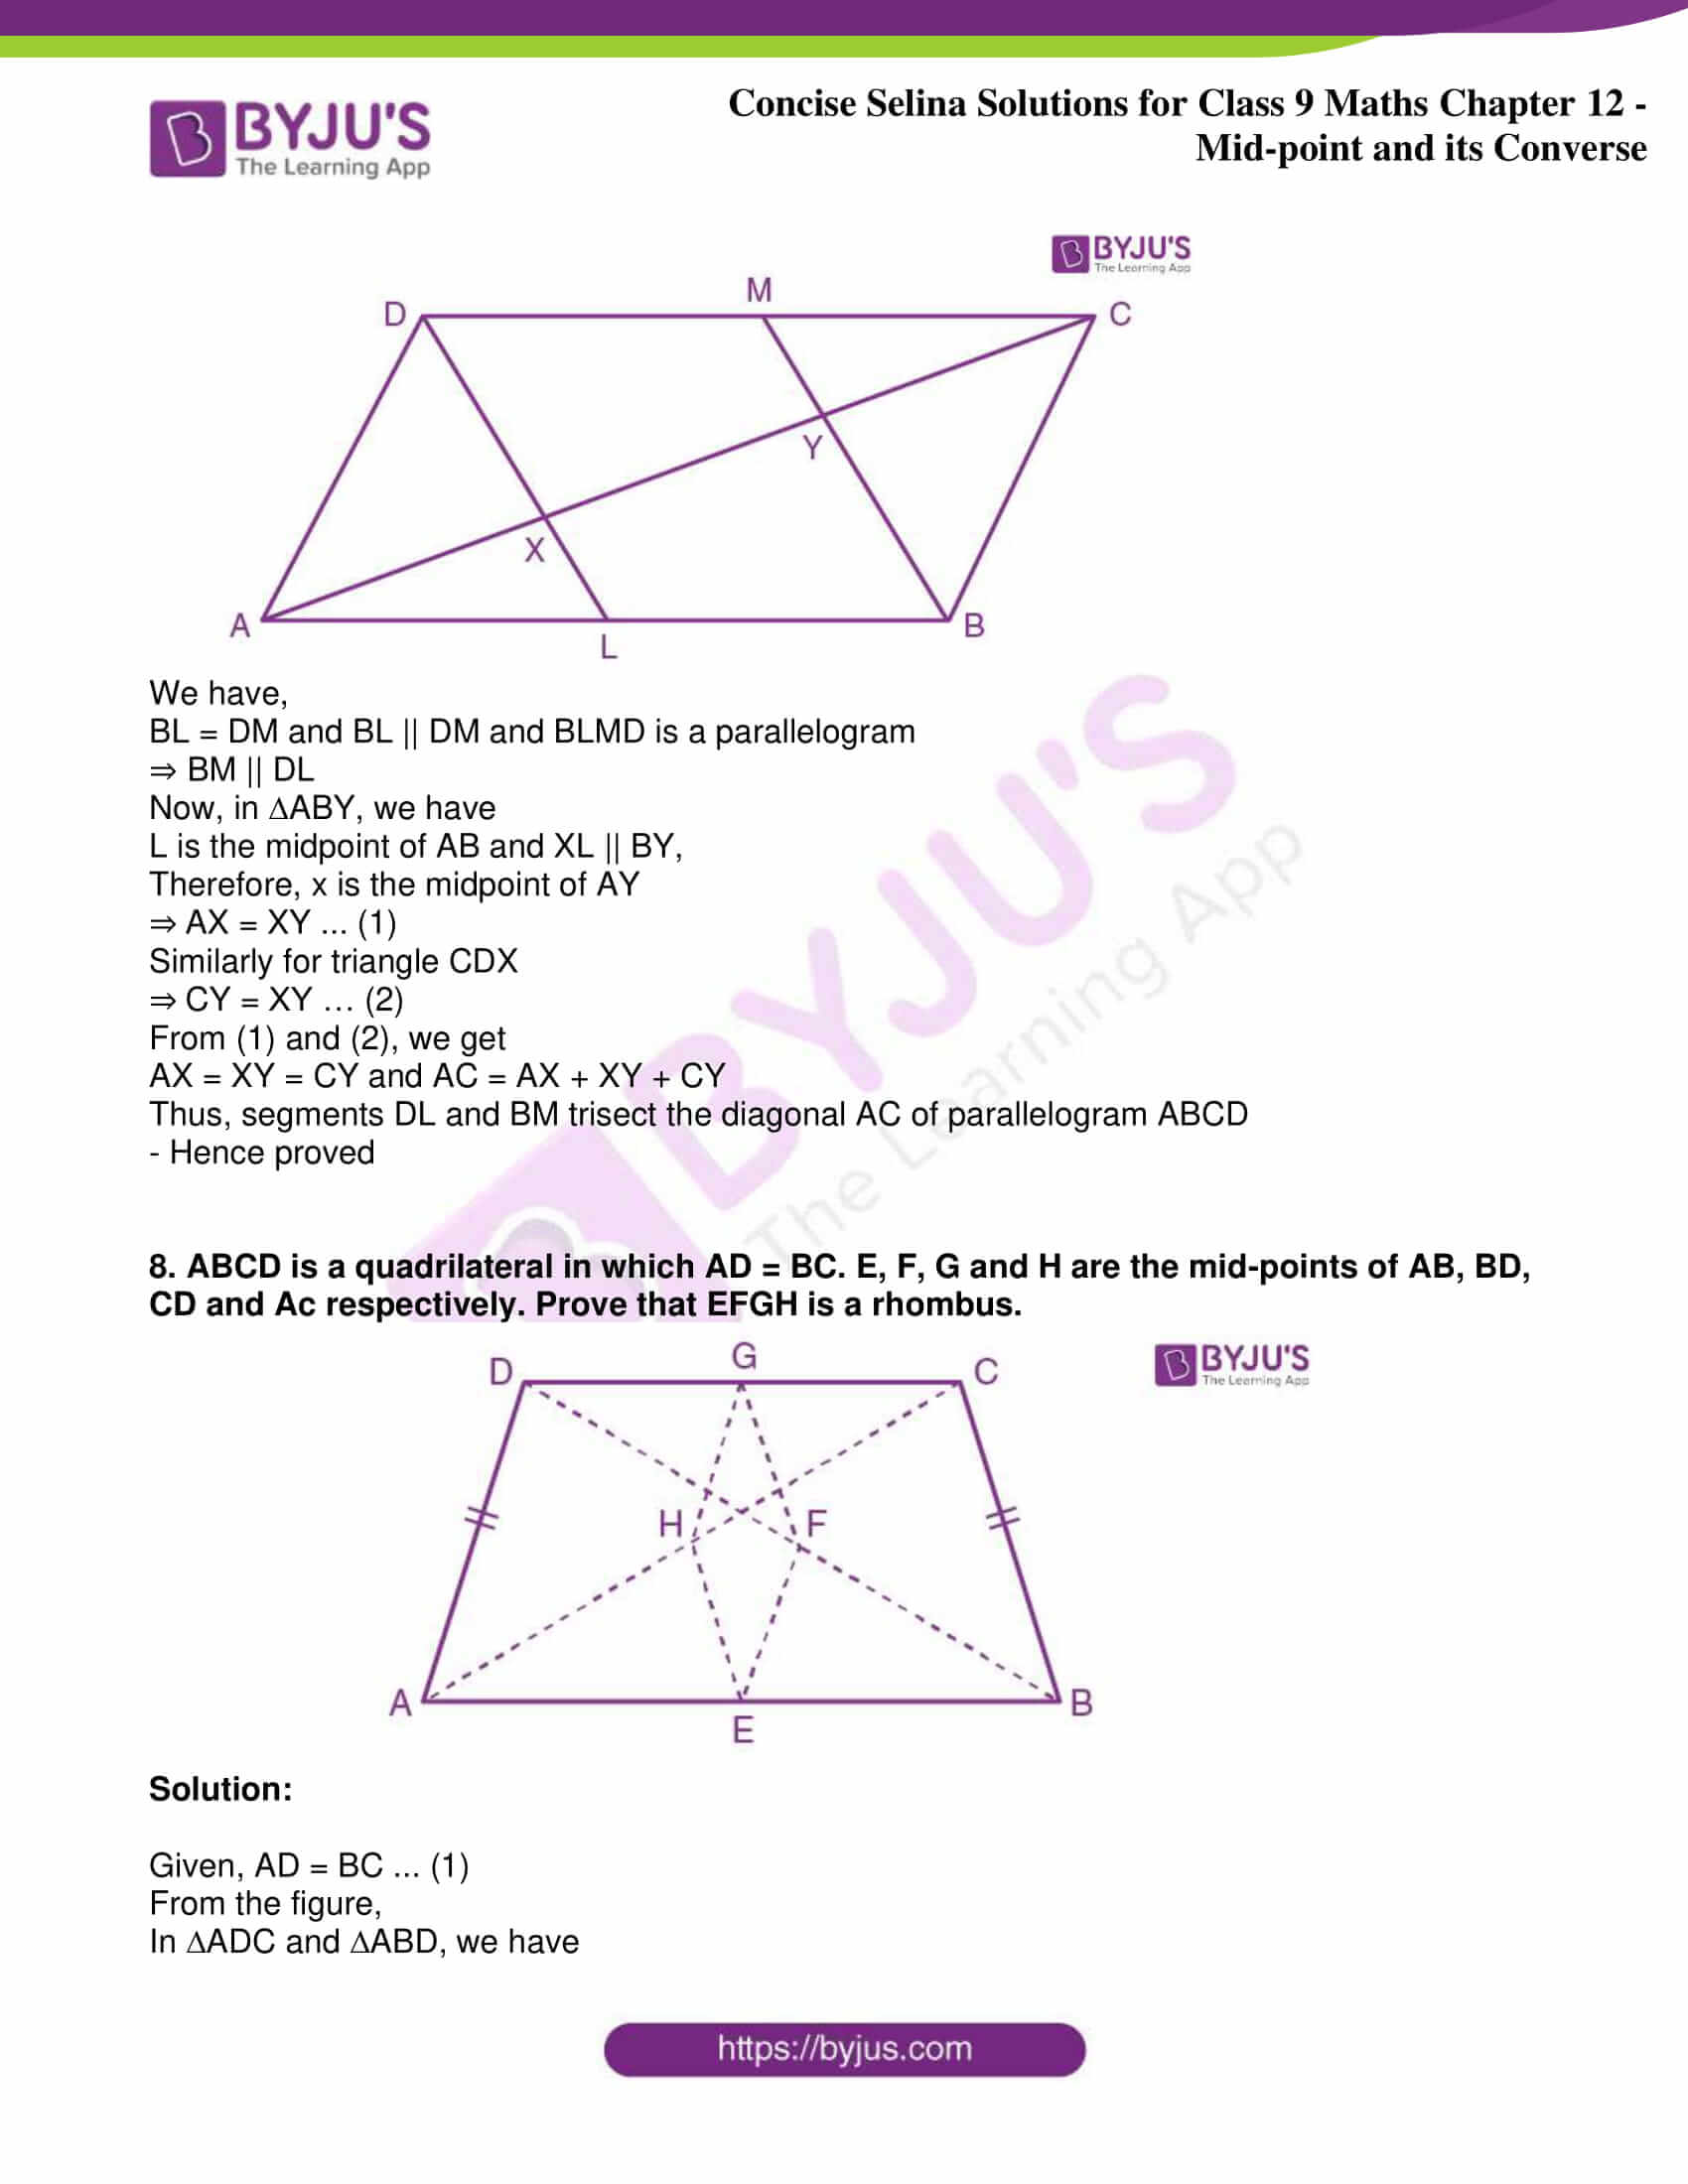 icse class 9 jun8 maths selina solutions chapter 12 midpoint and its converse 06